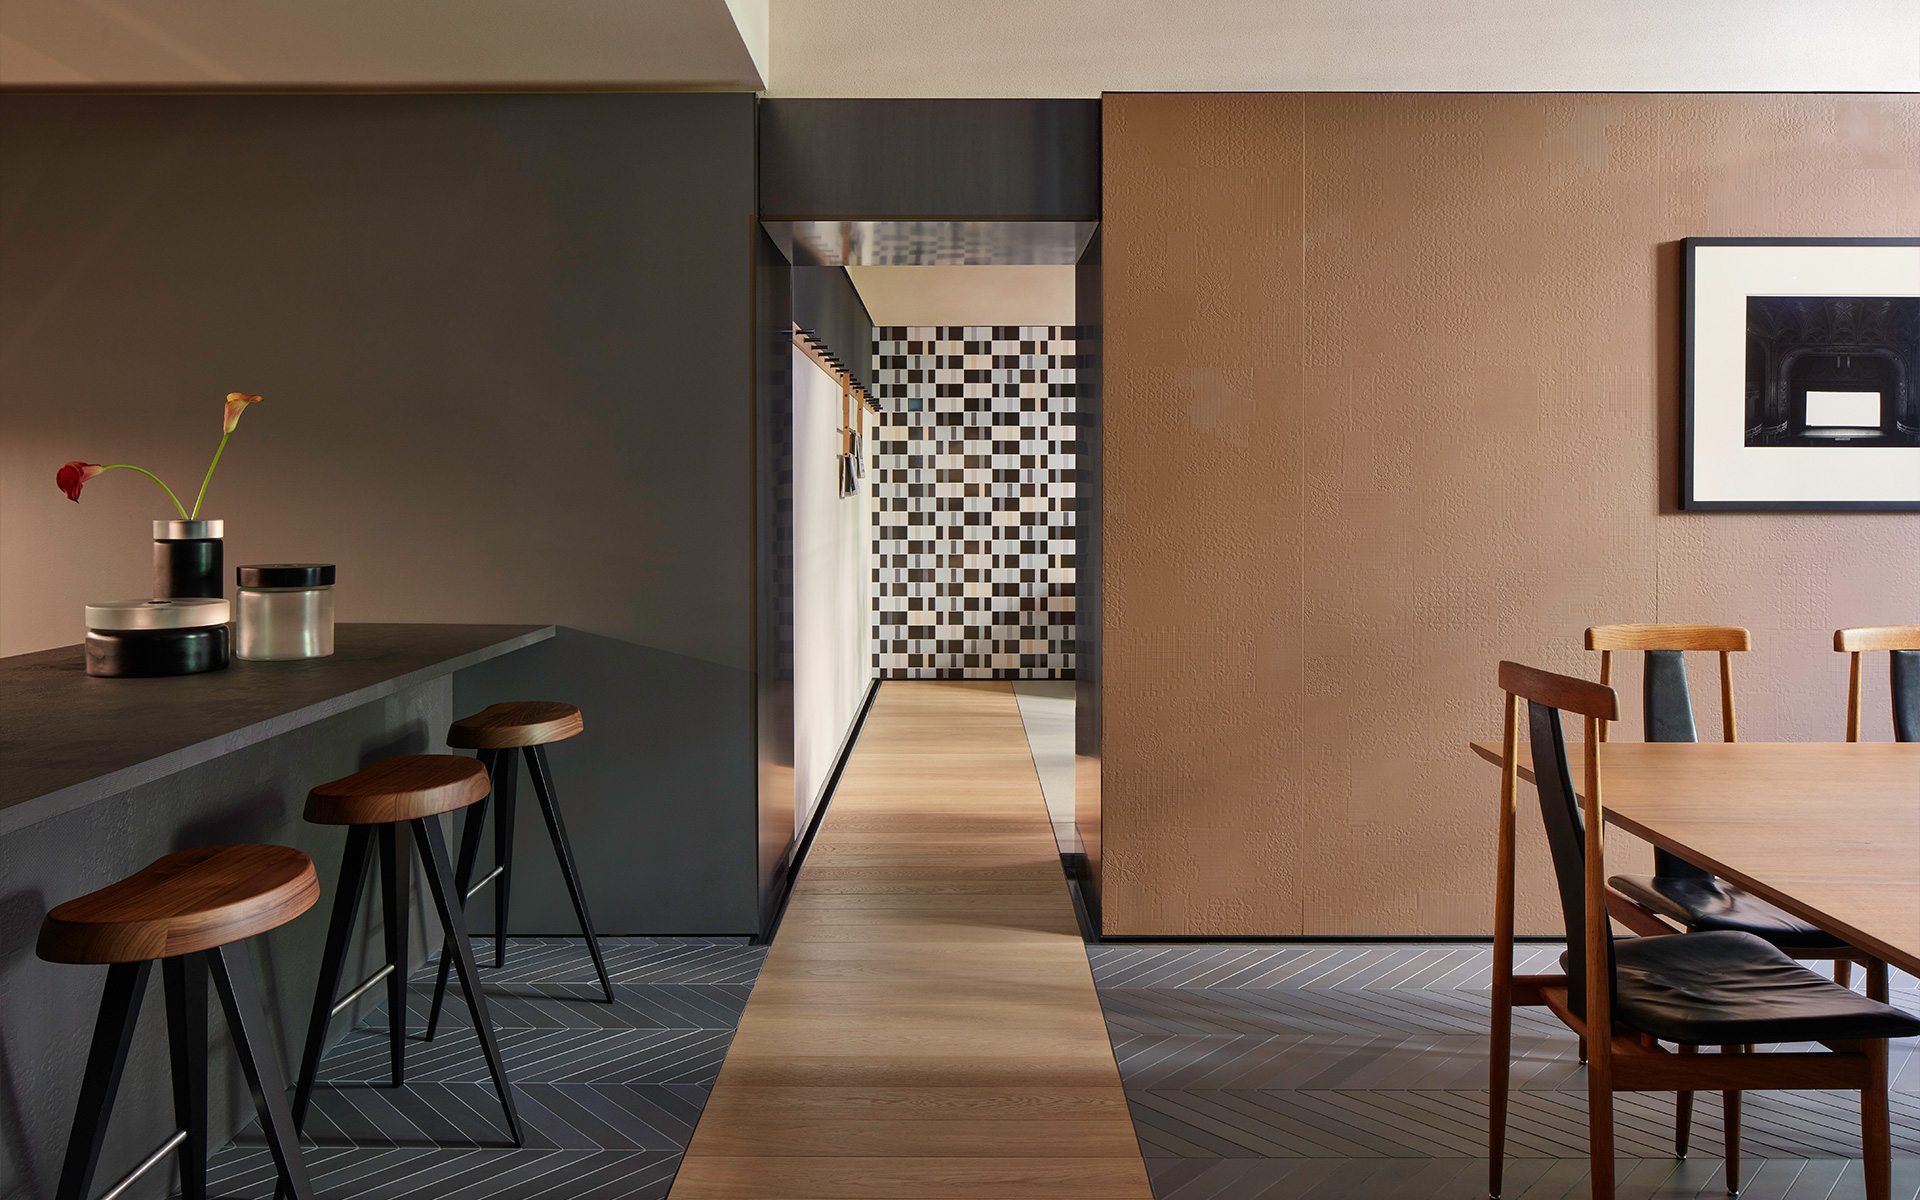 Casa Mutina Milano is a living space where to rediscover the value of experience, deepening into the company creative universe and taking time to study new projects, within an intimate and family atmosphere. In full Mutina style.